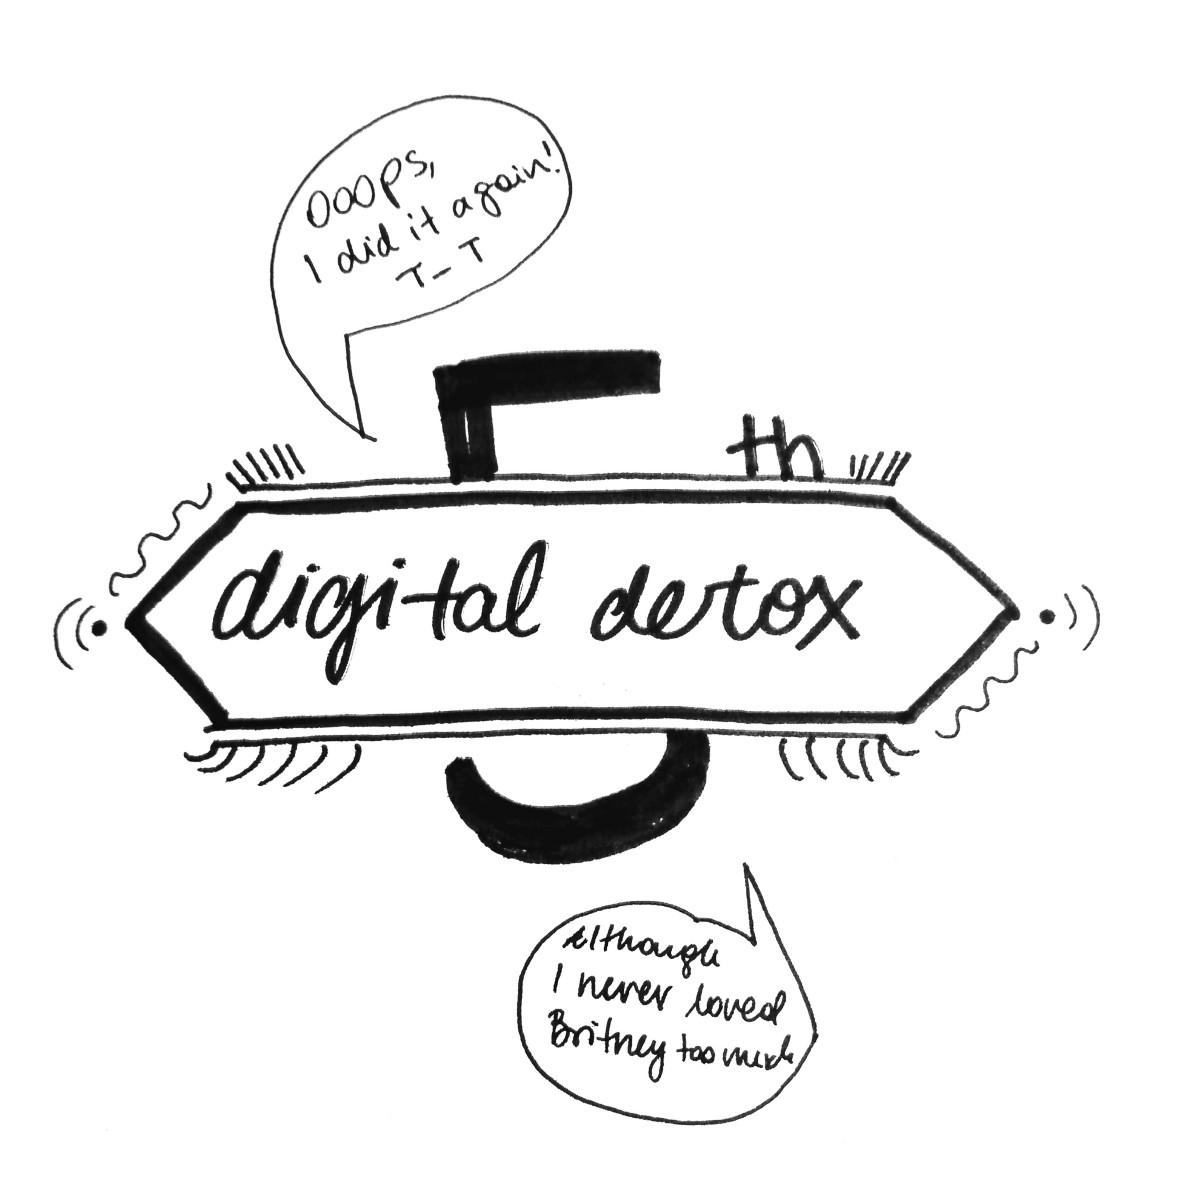 My 5th digital detox